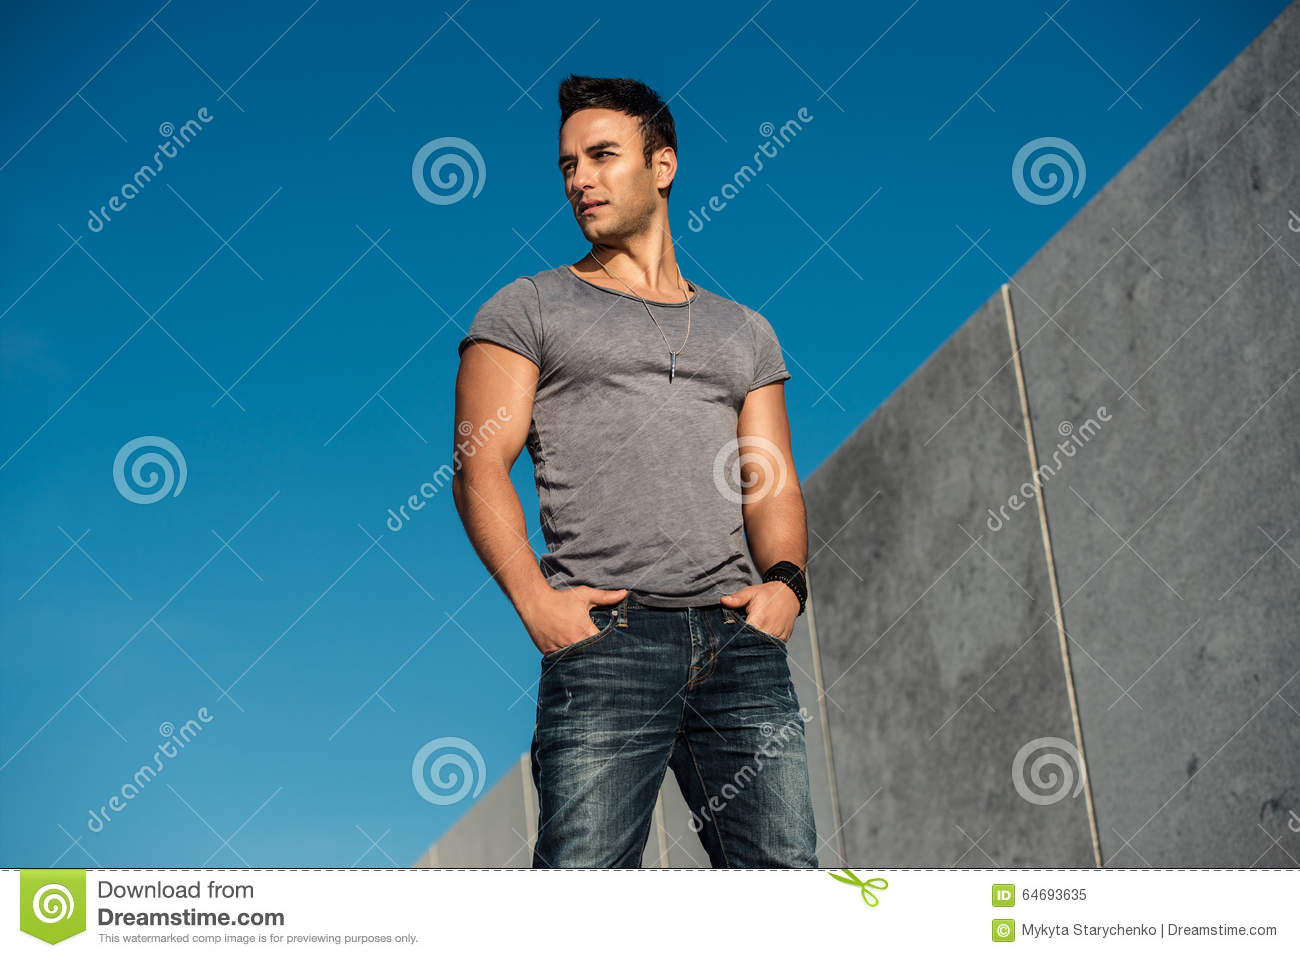 handsome fashion model man posing outdoors wearing grey t